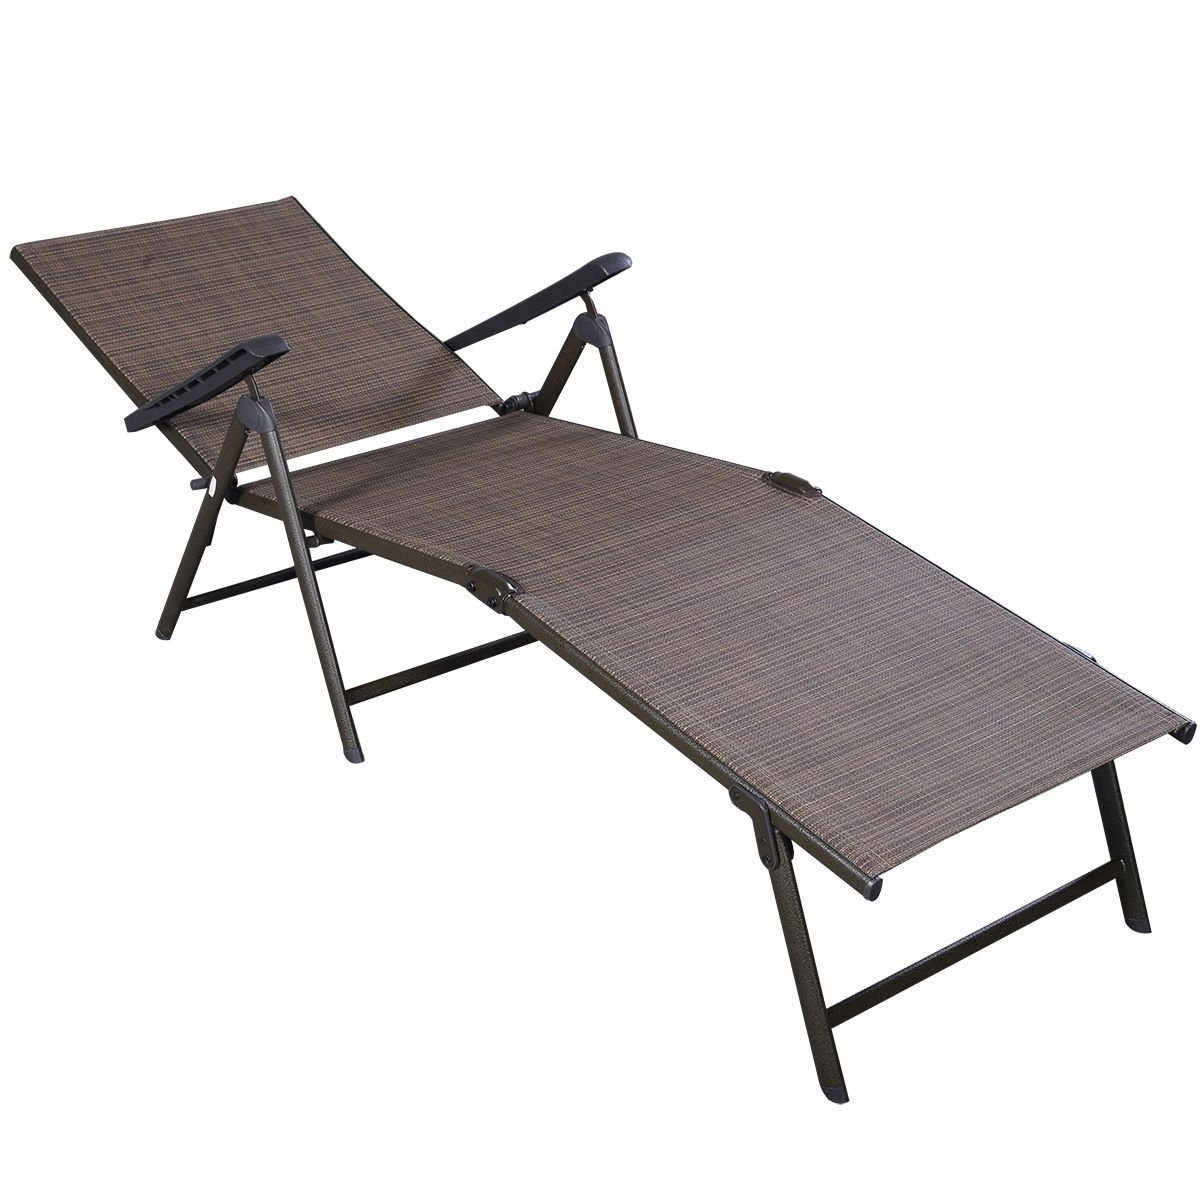 Lounge Chair : Outdoor Setting Sale Cheap Lounge Chairs Pool Inside Most Popular Outdoor Chaise Lounge Chairs Under $ (View 4 of 15)